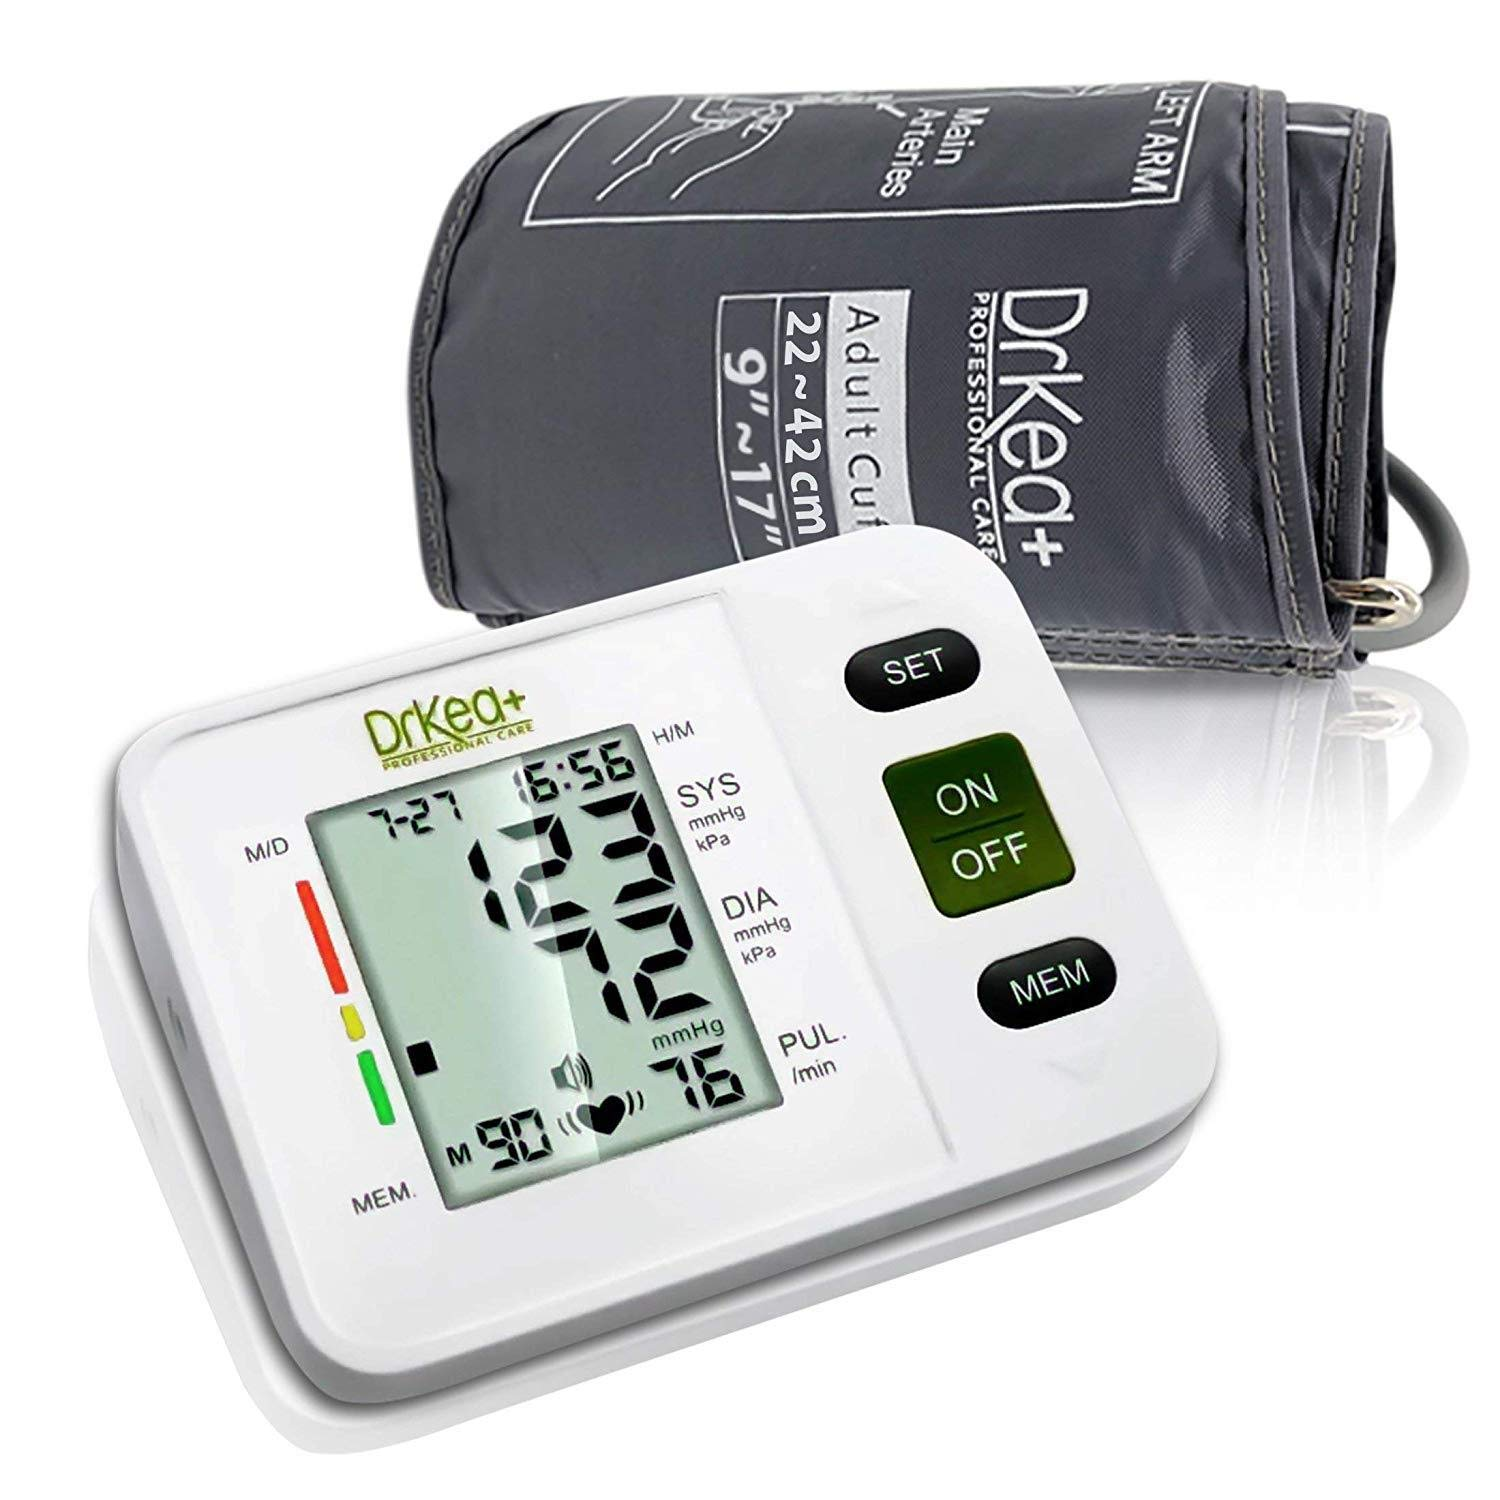 DrKea Fully Automatic Blood Pressure Machine Kit